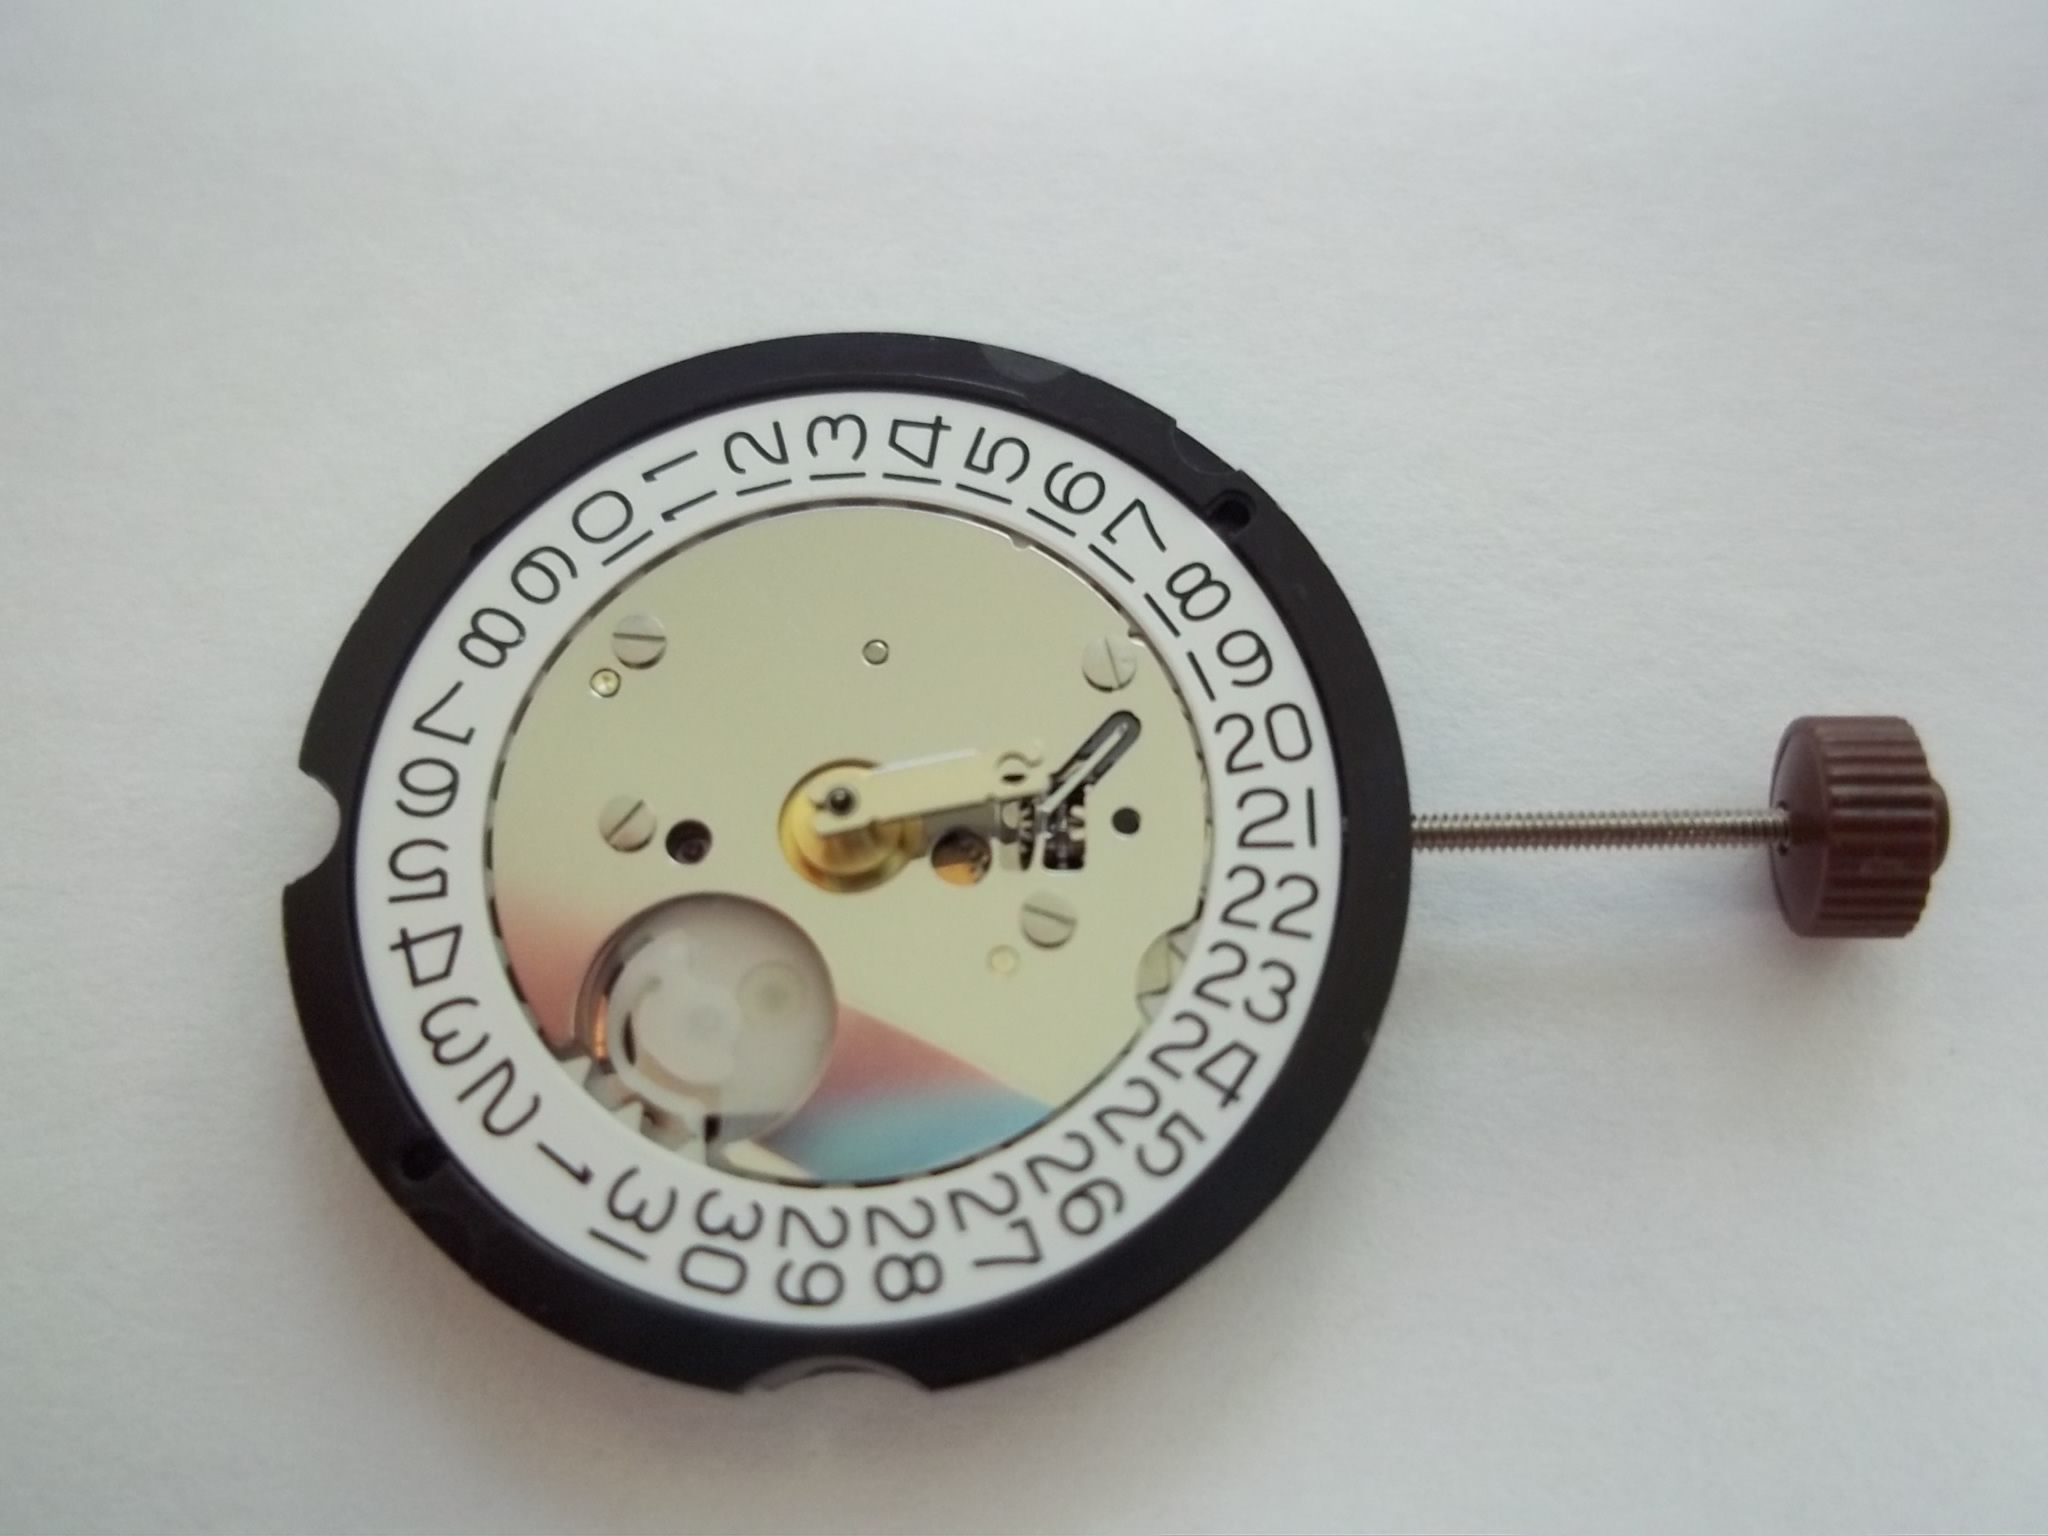 Har/Ron Harley/Ronda 505 Quartz Watch Movement date @ 3